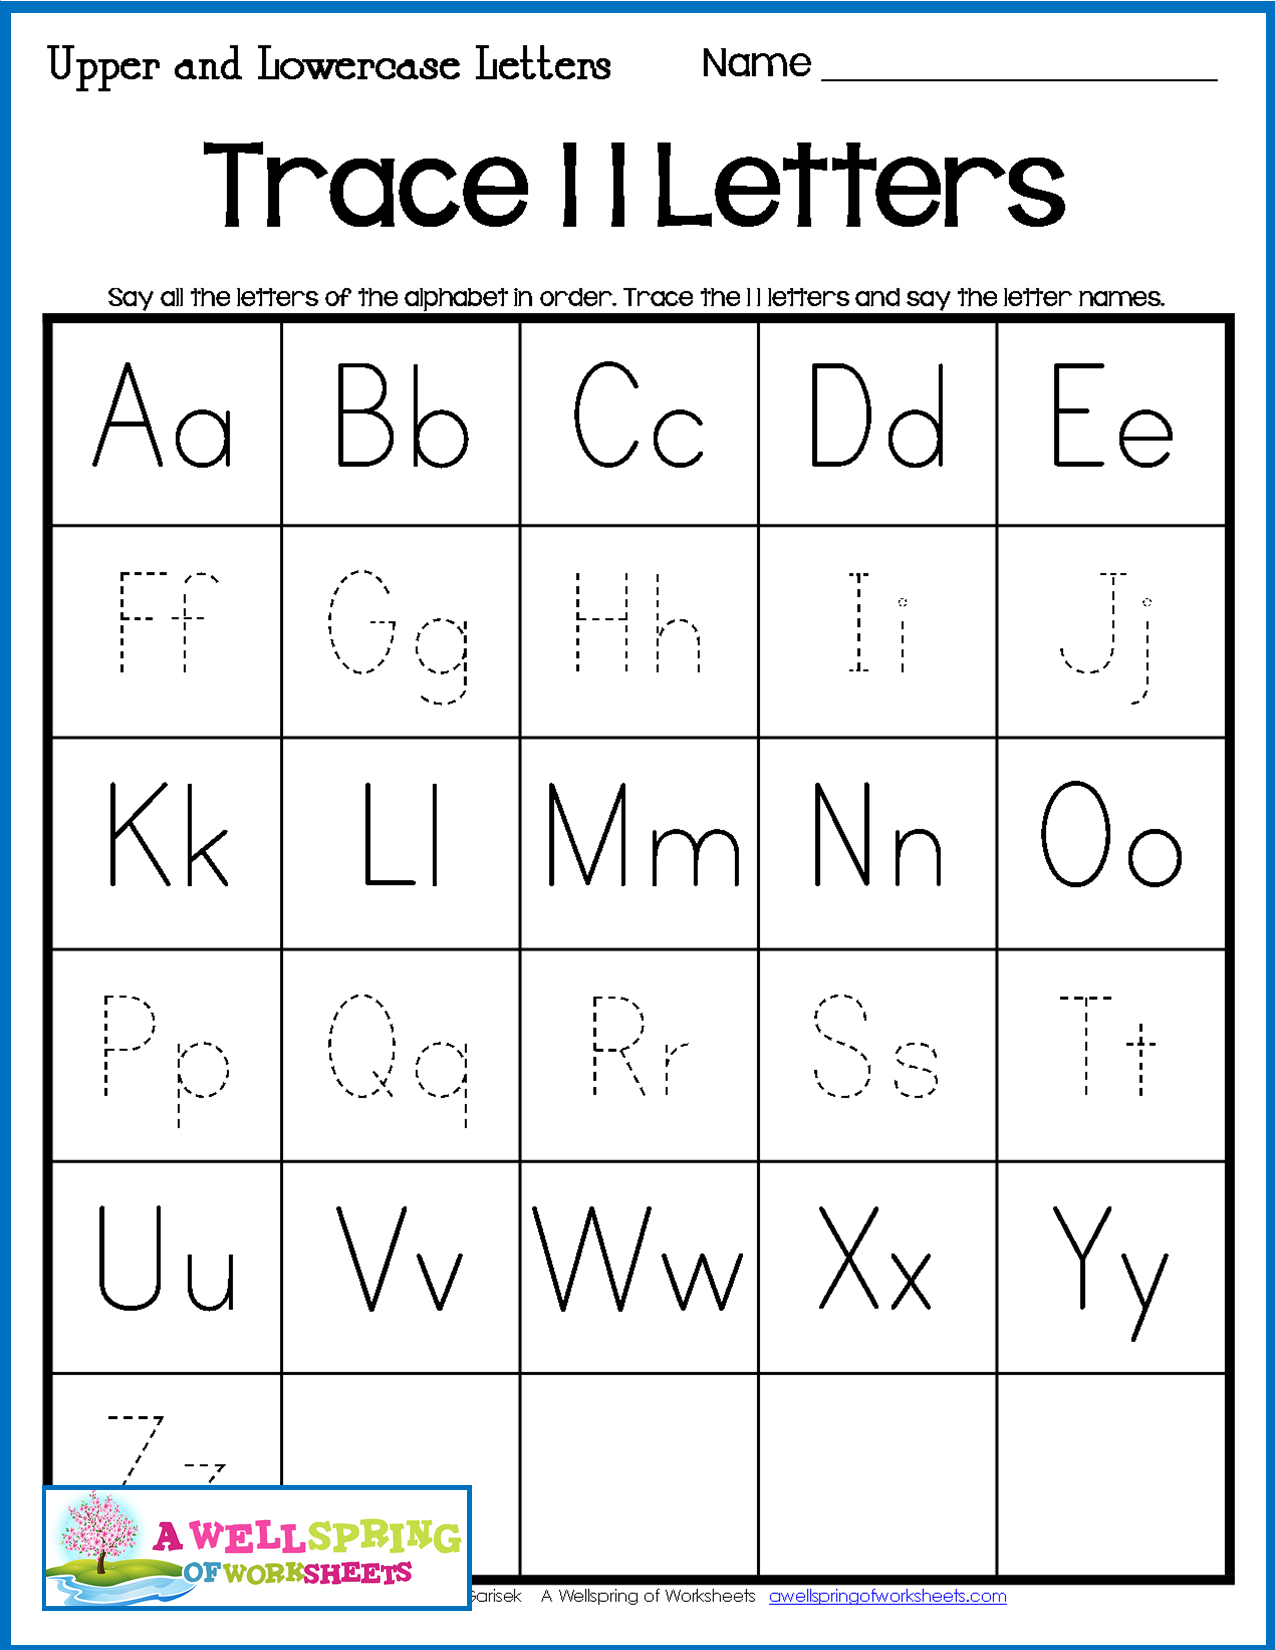 Alphabet Tracing Worksheets - Uppercase & Lowercase Letters intended for Alphabet Tracing Uppercase And Lowercase